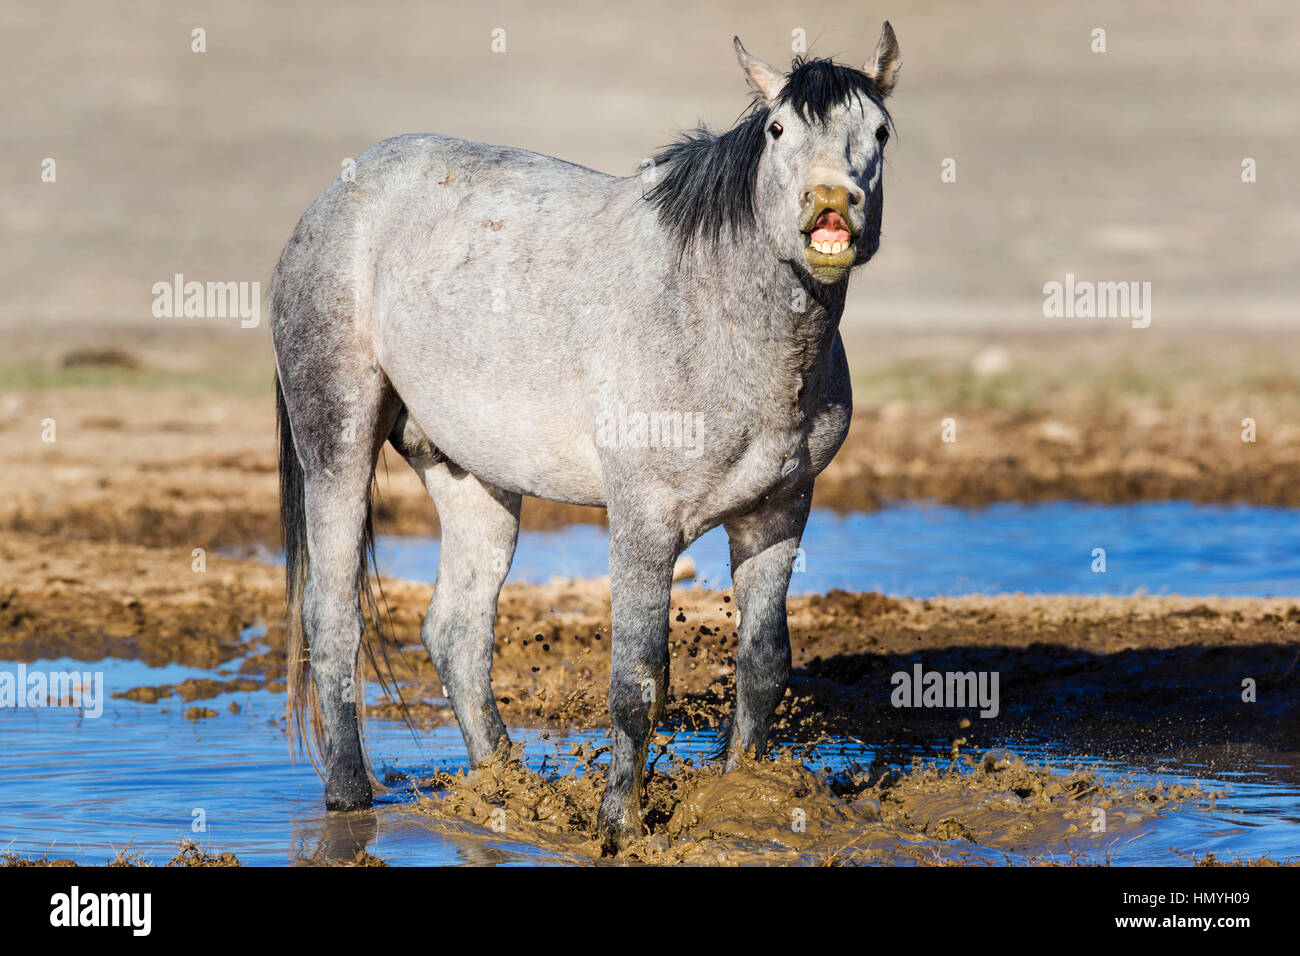 Stock Photo : Gray Wild Mustang playing in mud (Equus ferus caballus), West Desert, Utah, USA, North America - Stock Image